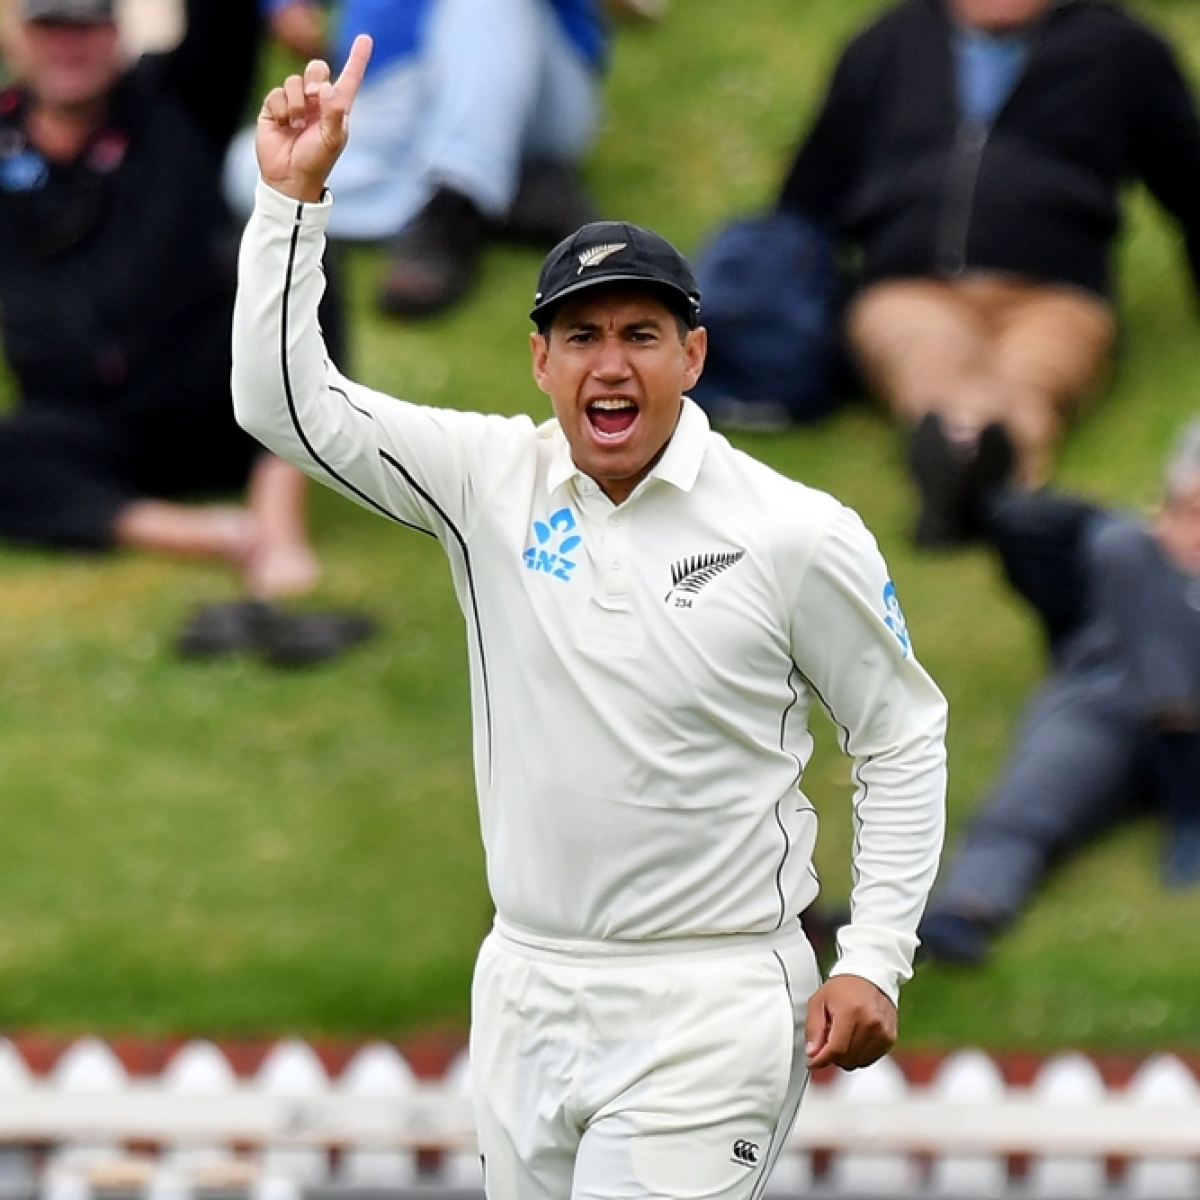 NZ vs IND: Ross Taylor receives standing ovation from crowd during his 100th Test match at Basin Reserve